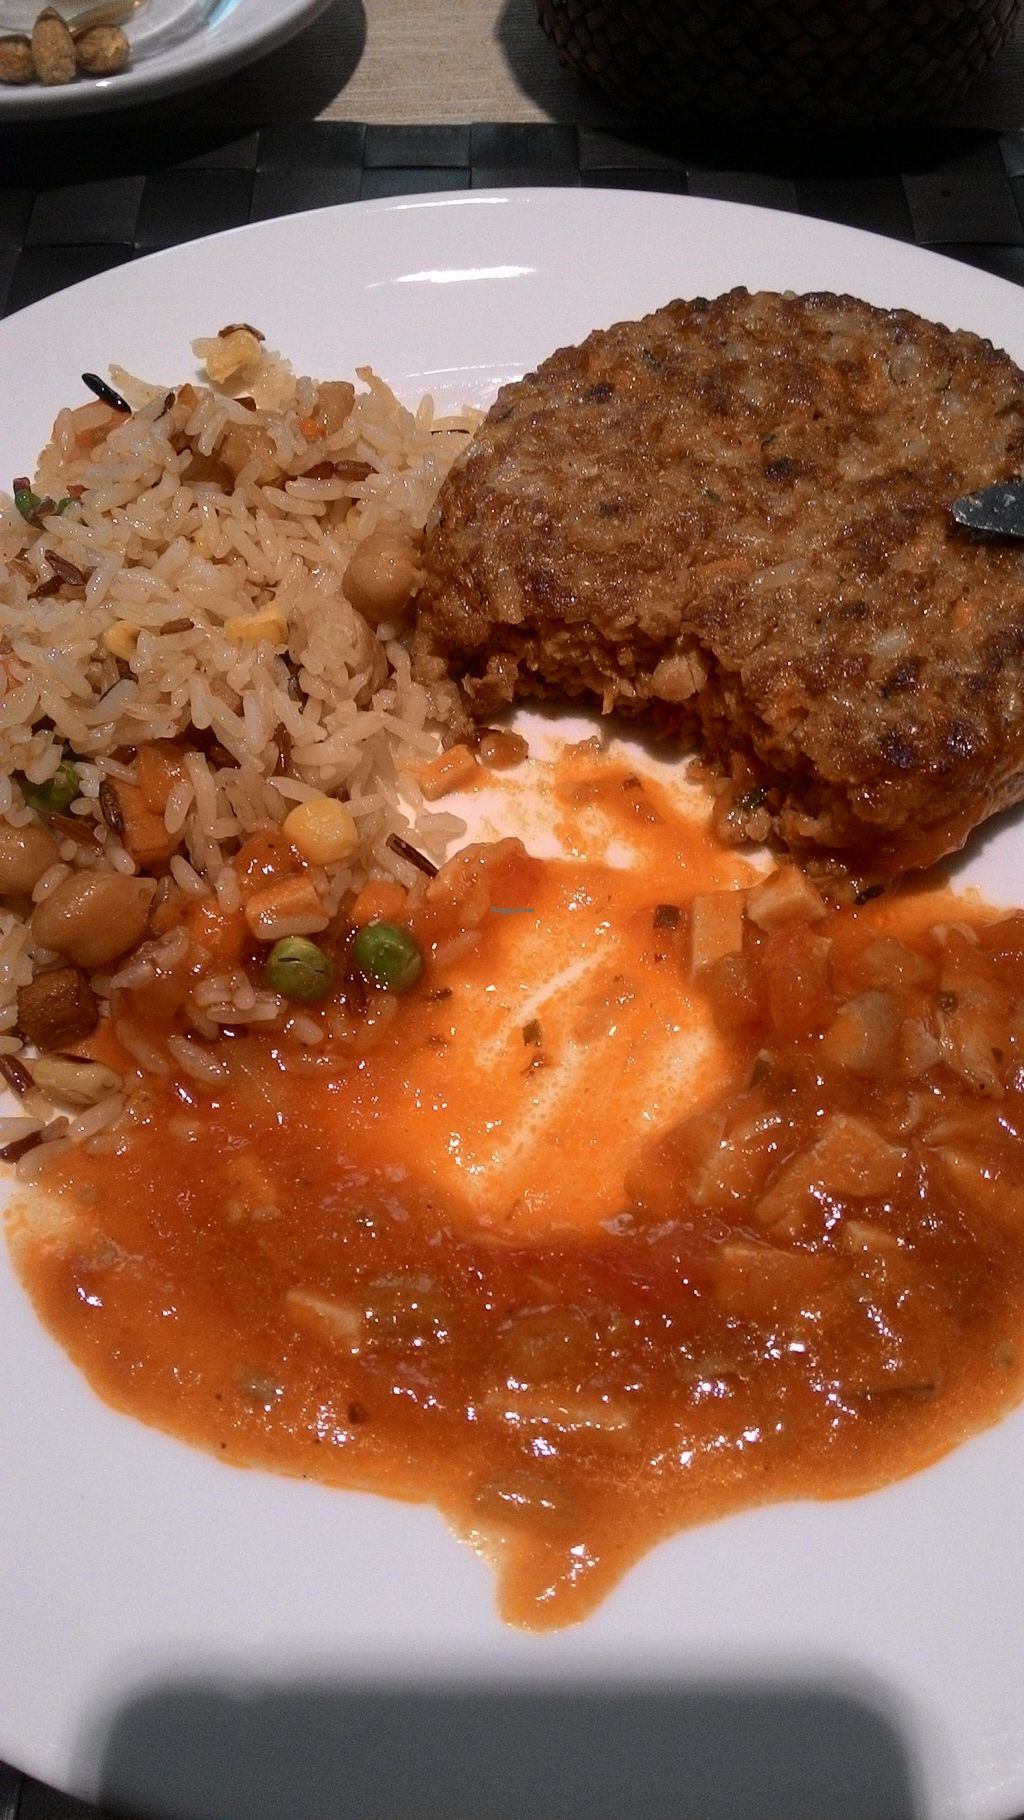 """Photo of Tast i mes Natural  by <a href=""""/members/profile/KeepCalmLoveCats"""">KeepCalmLoveCats</a> <br/>Veggie burguer (veggies and texturized soy) with tomato with soy, and rice with soy, beans and chickpeas <br/> November 3, 2015  - <a href='/contact/abuse/image/46852/123682'>Report</a>"""